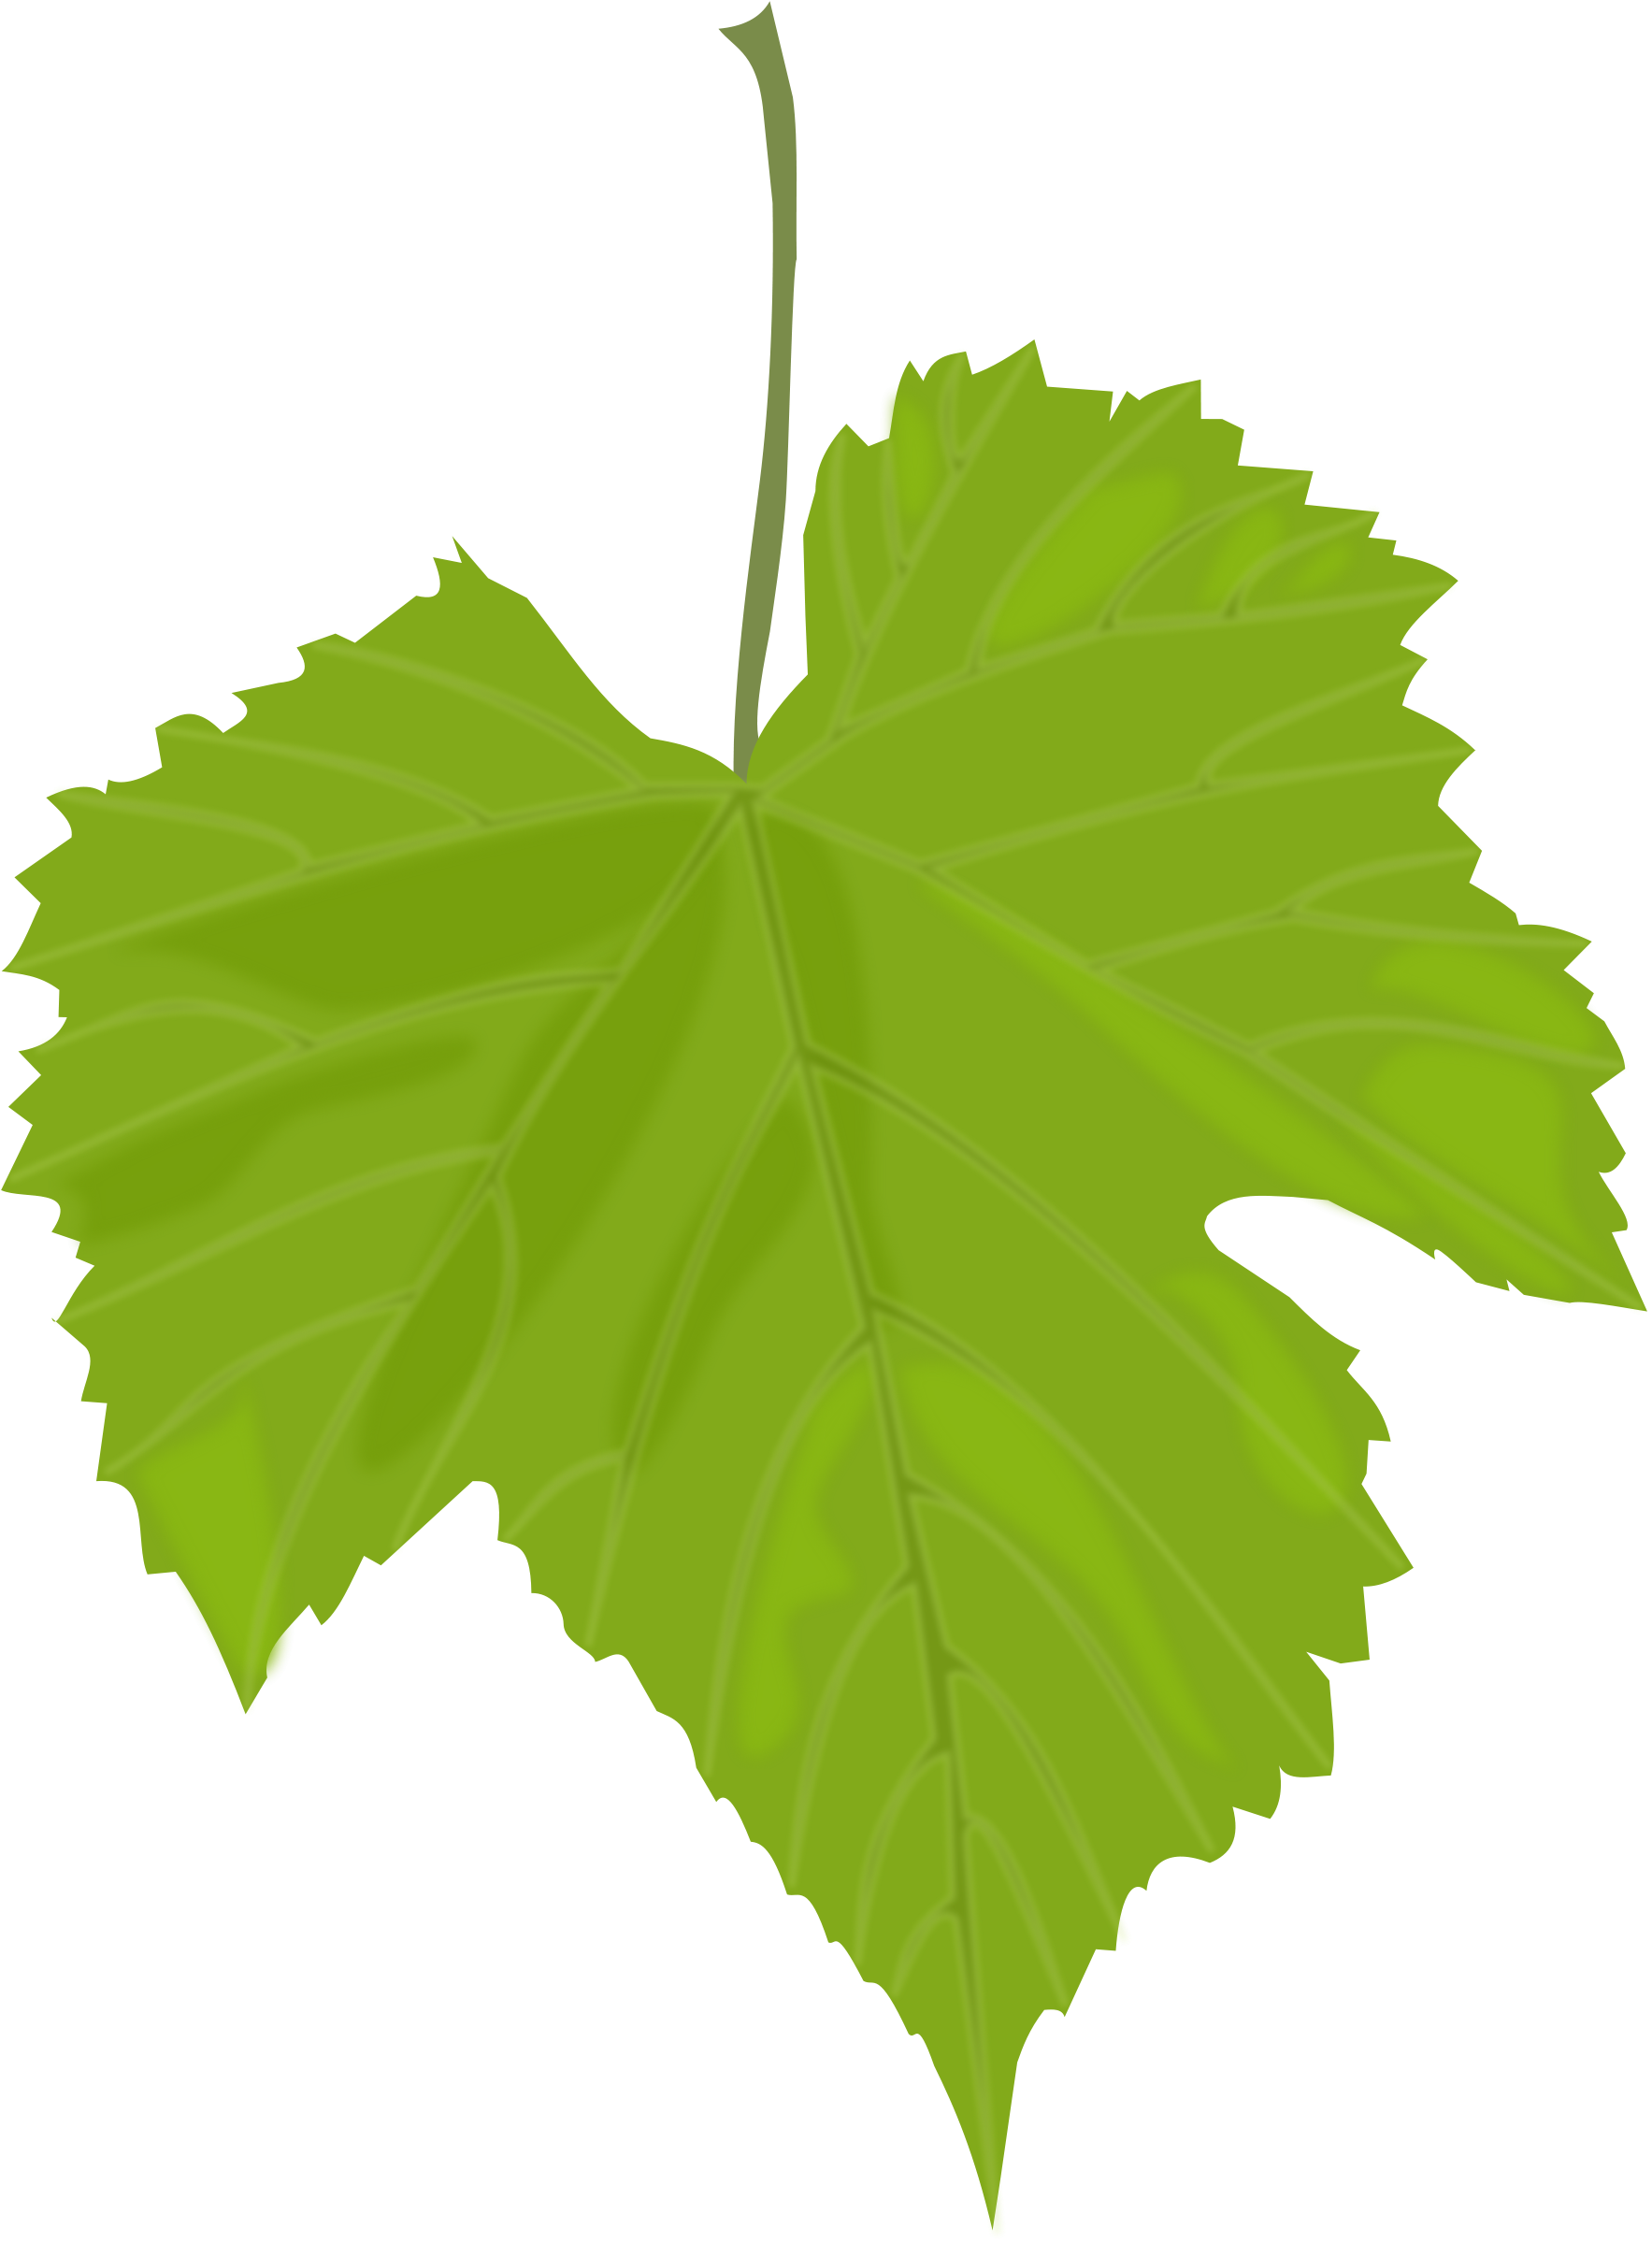 Grape leaf clipart.